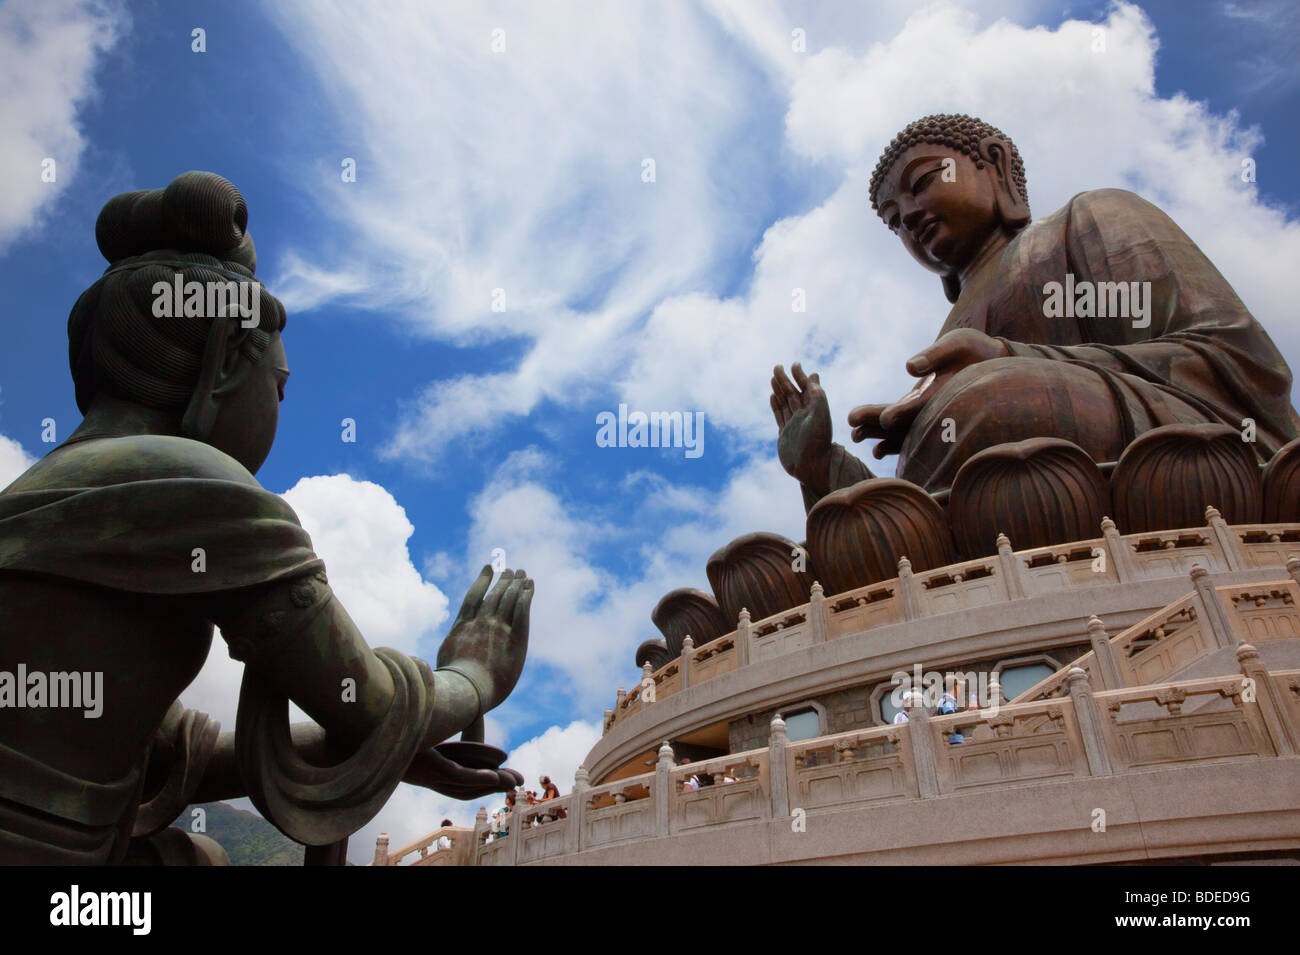 Giant Buddha, Po Lin Monastery, Hong Kong, China. - Stock Image